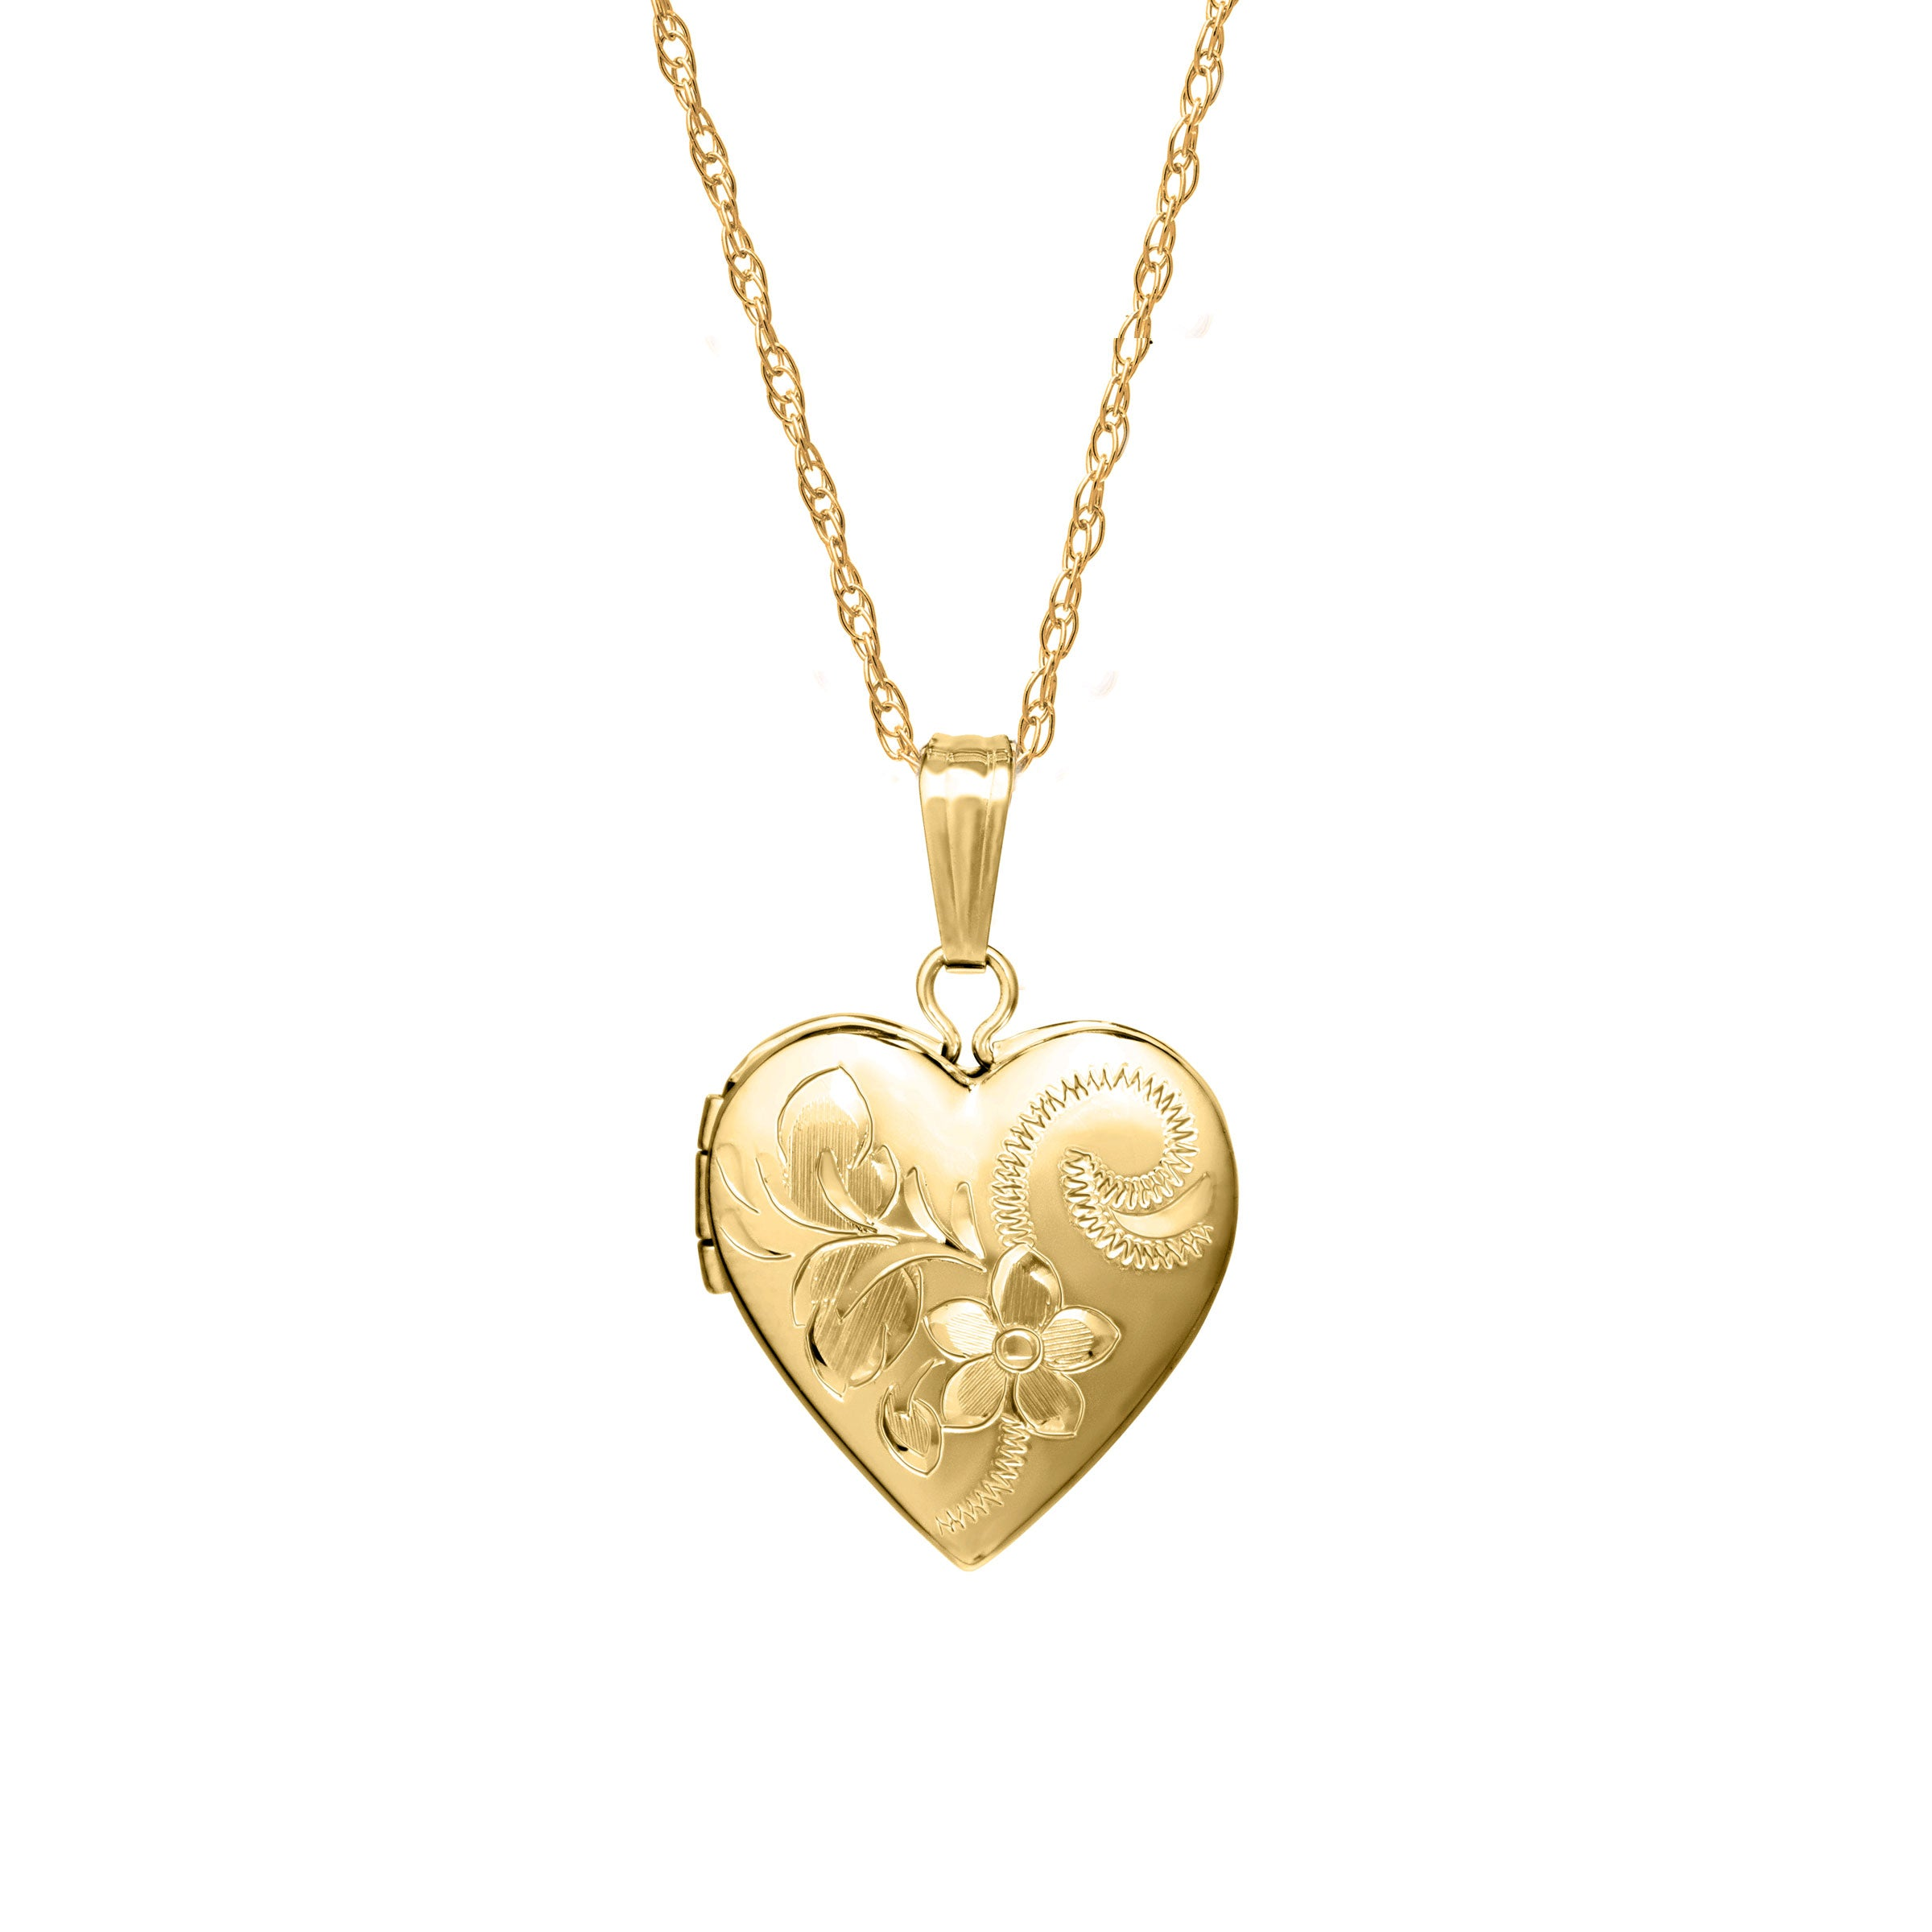 14K Yellow Gold Engraved Heart Locket Charm Pendant For Necklace or Chain